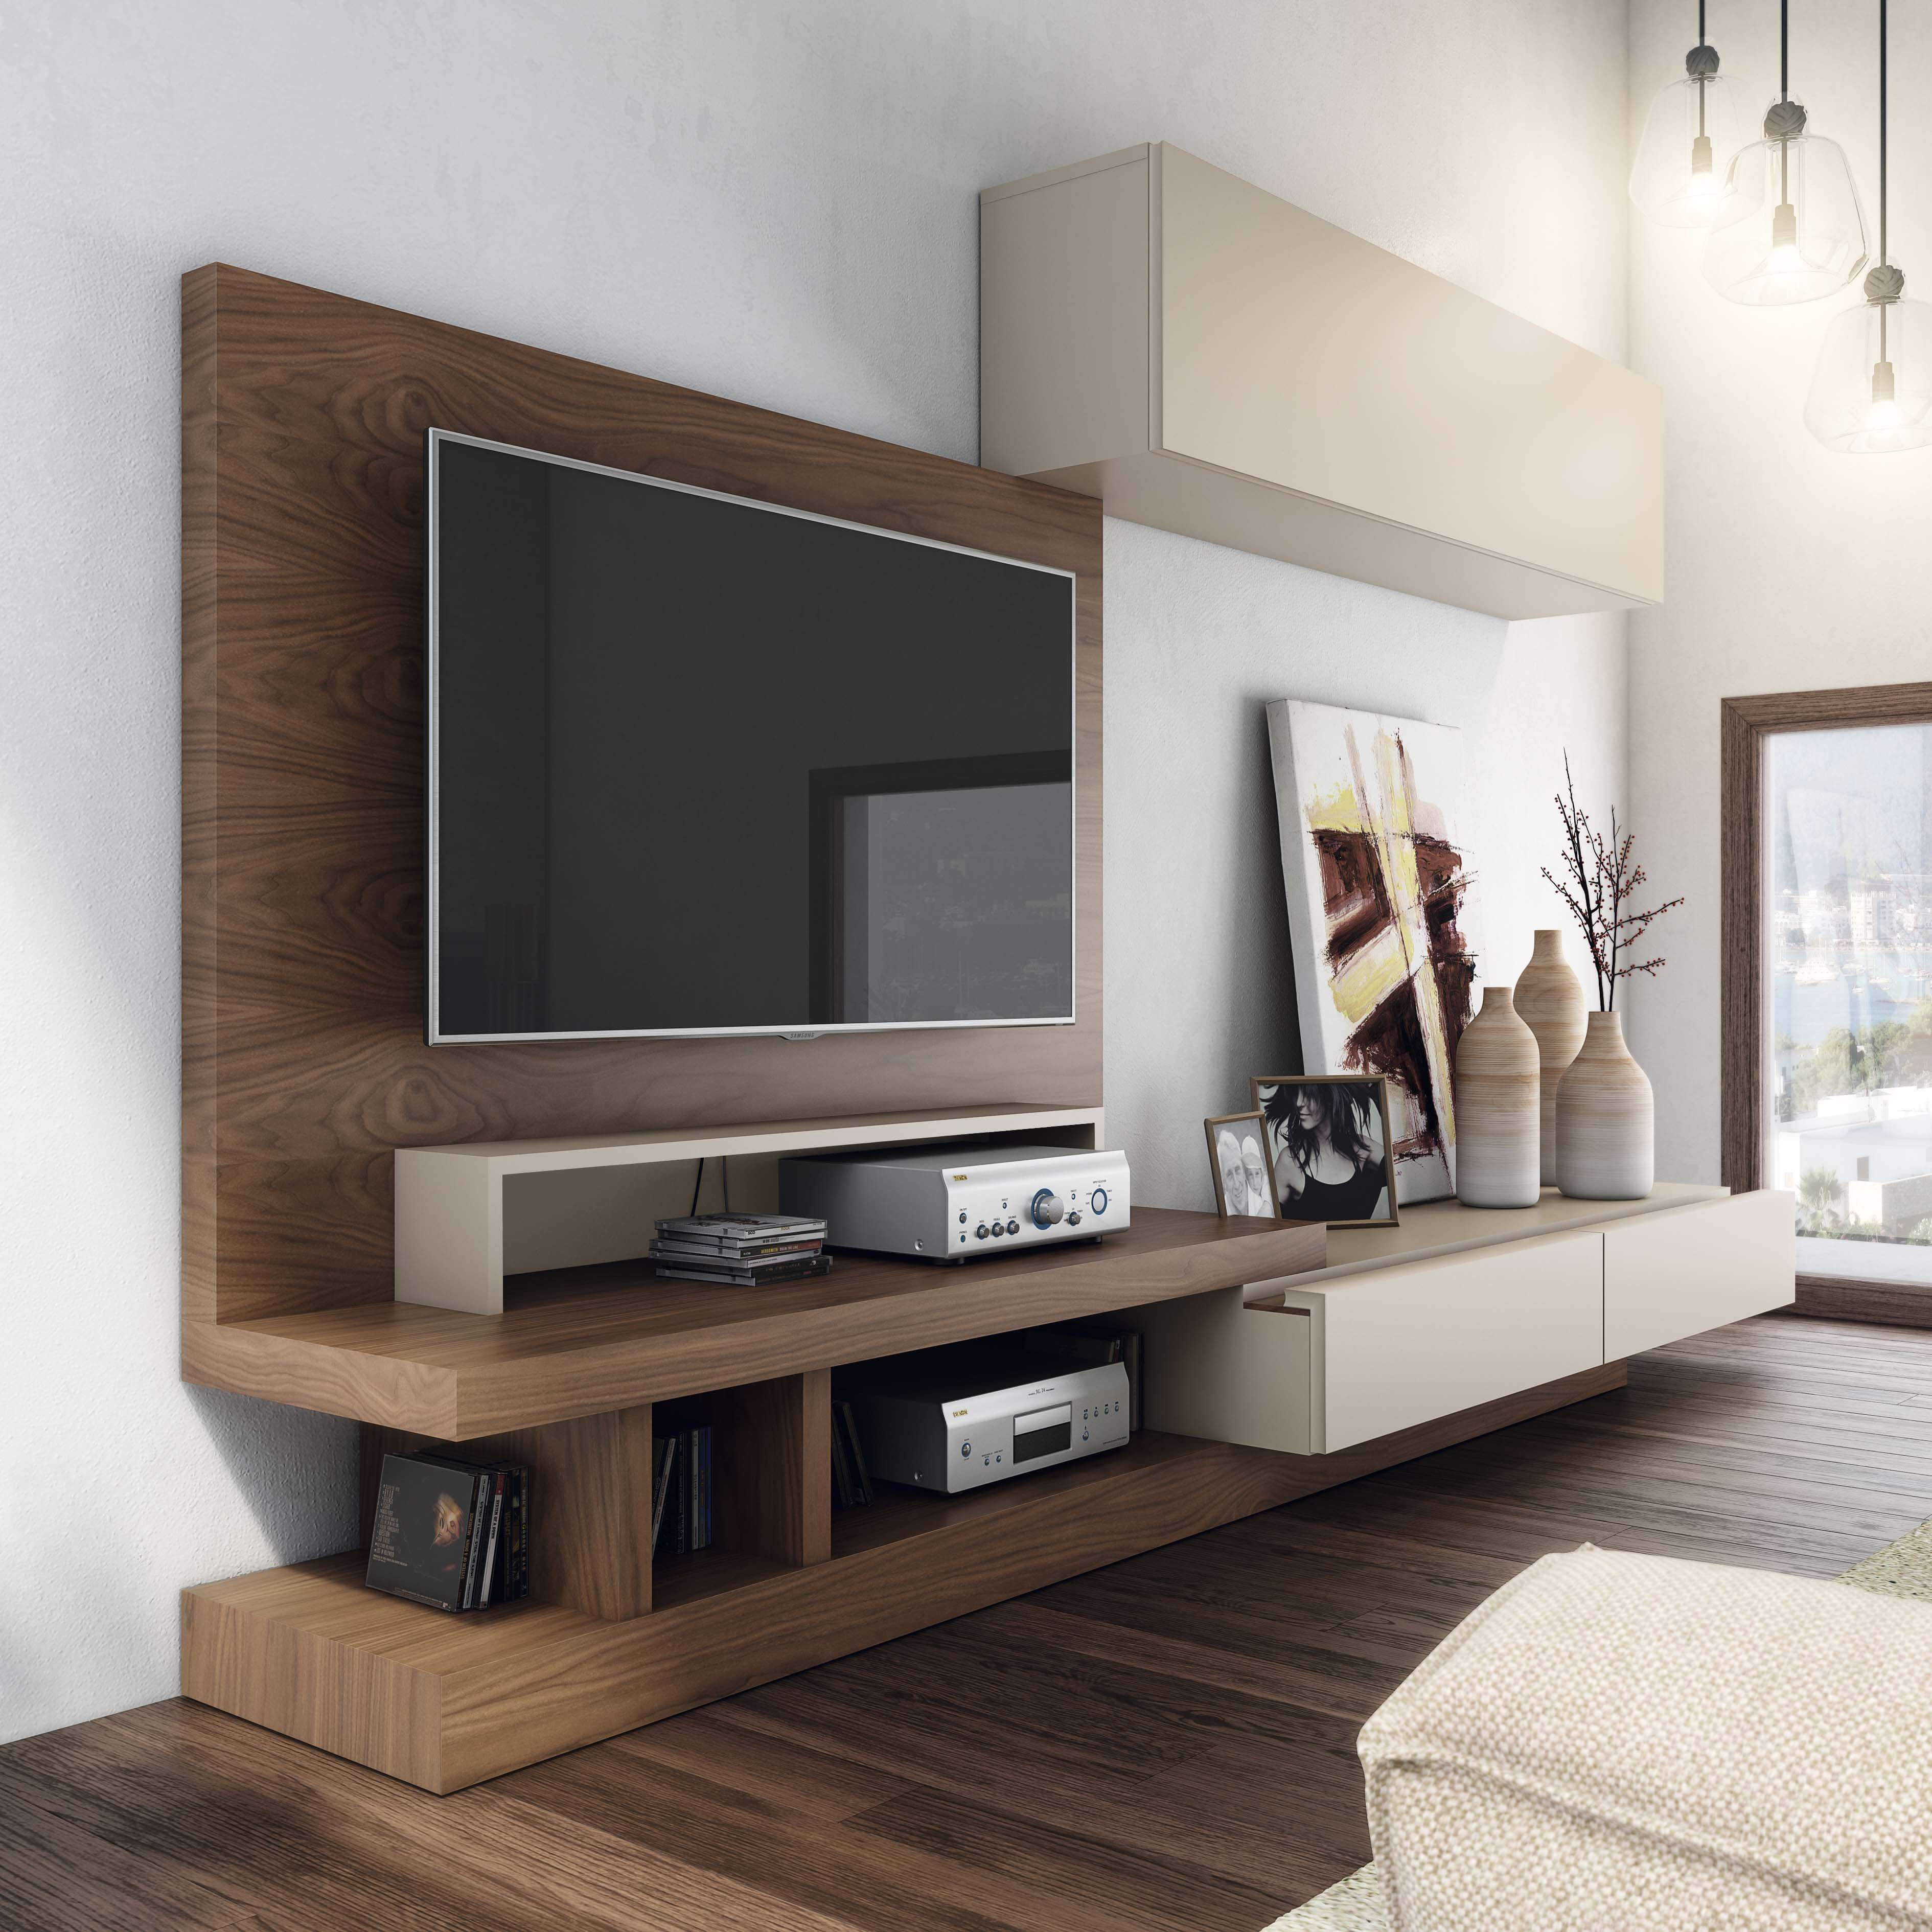 Pin By Augustina Ojo On Wallunit Living Room Tv Unit Living Room Tv Stand Living Room Tv Wall